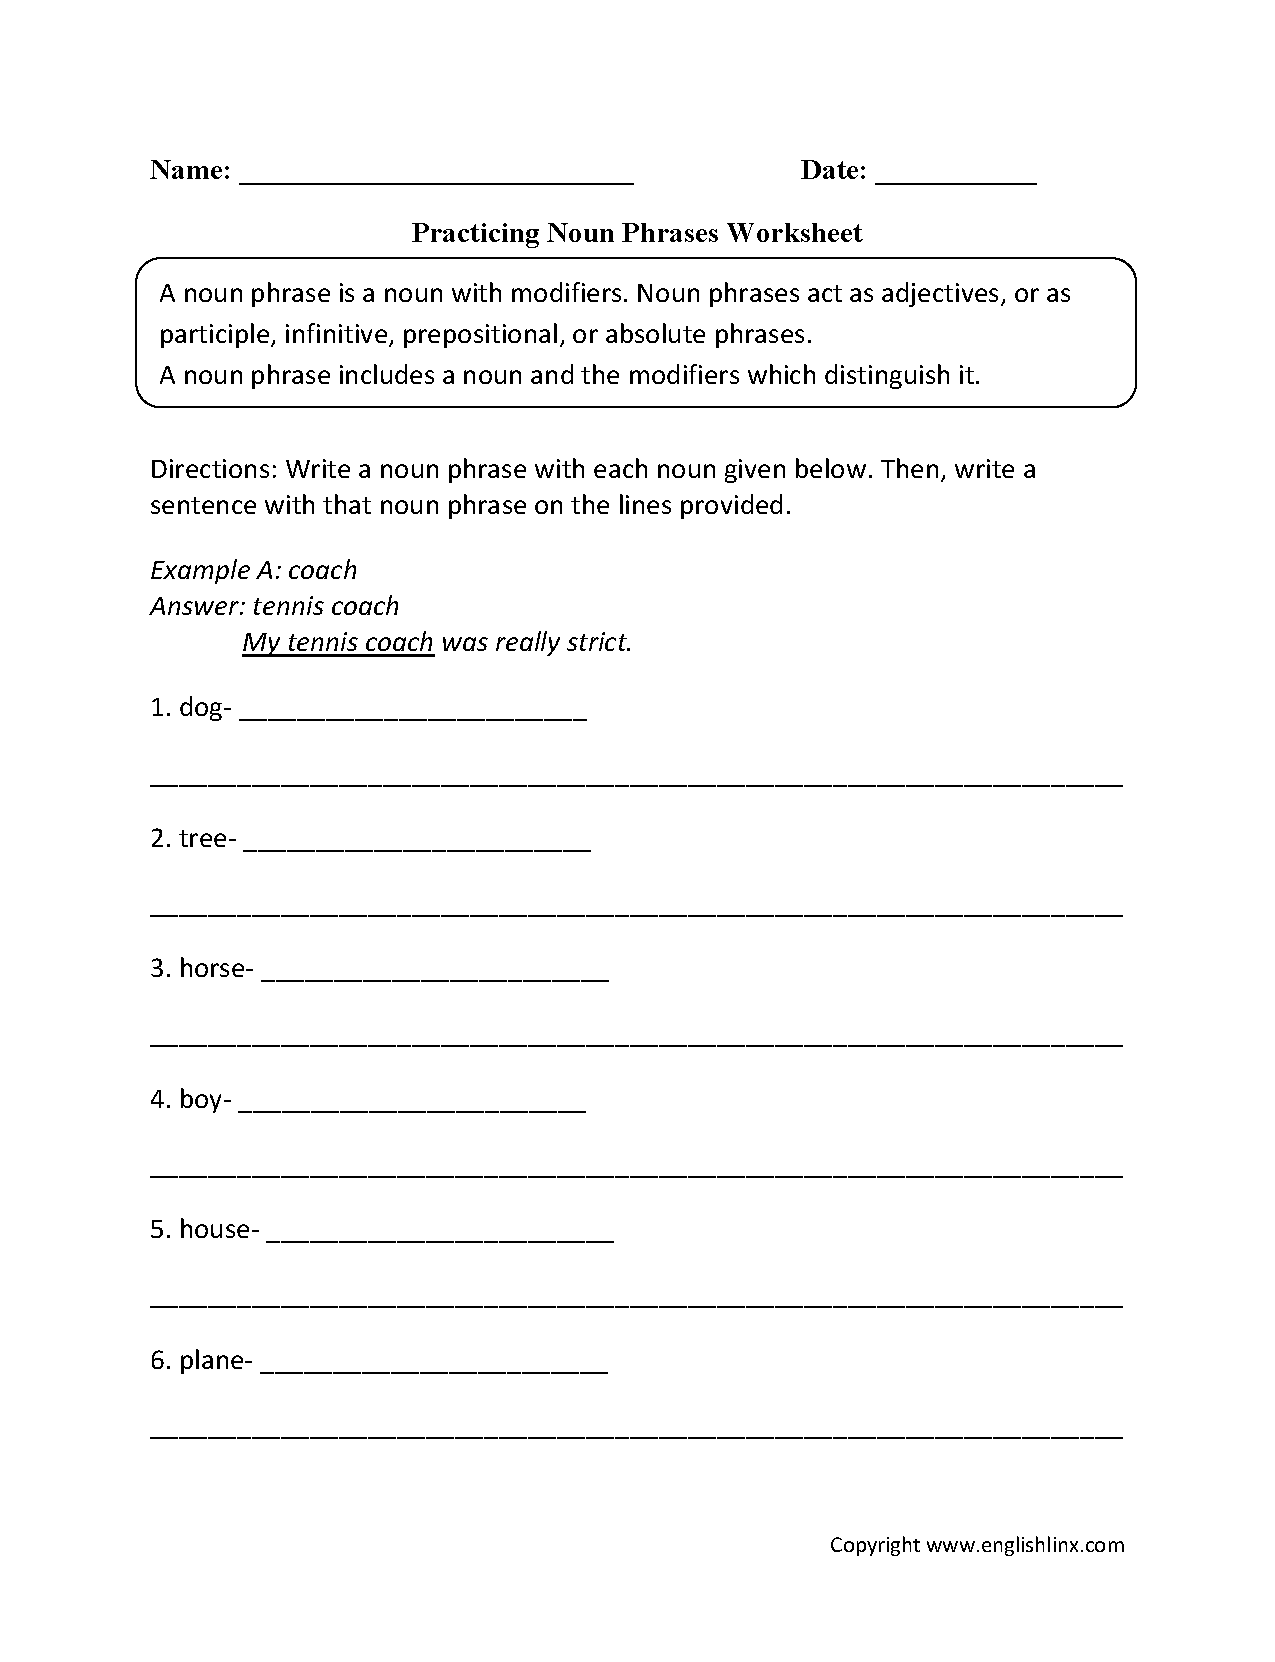 worksheet Participle Phrase Worksheet nouns worksheets noun phrases worksheets